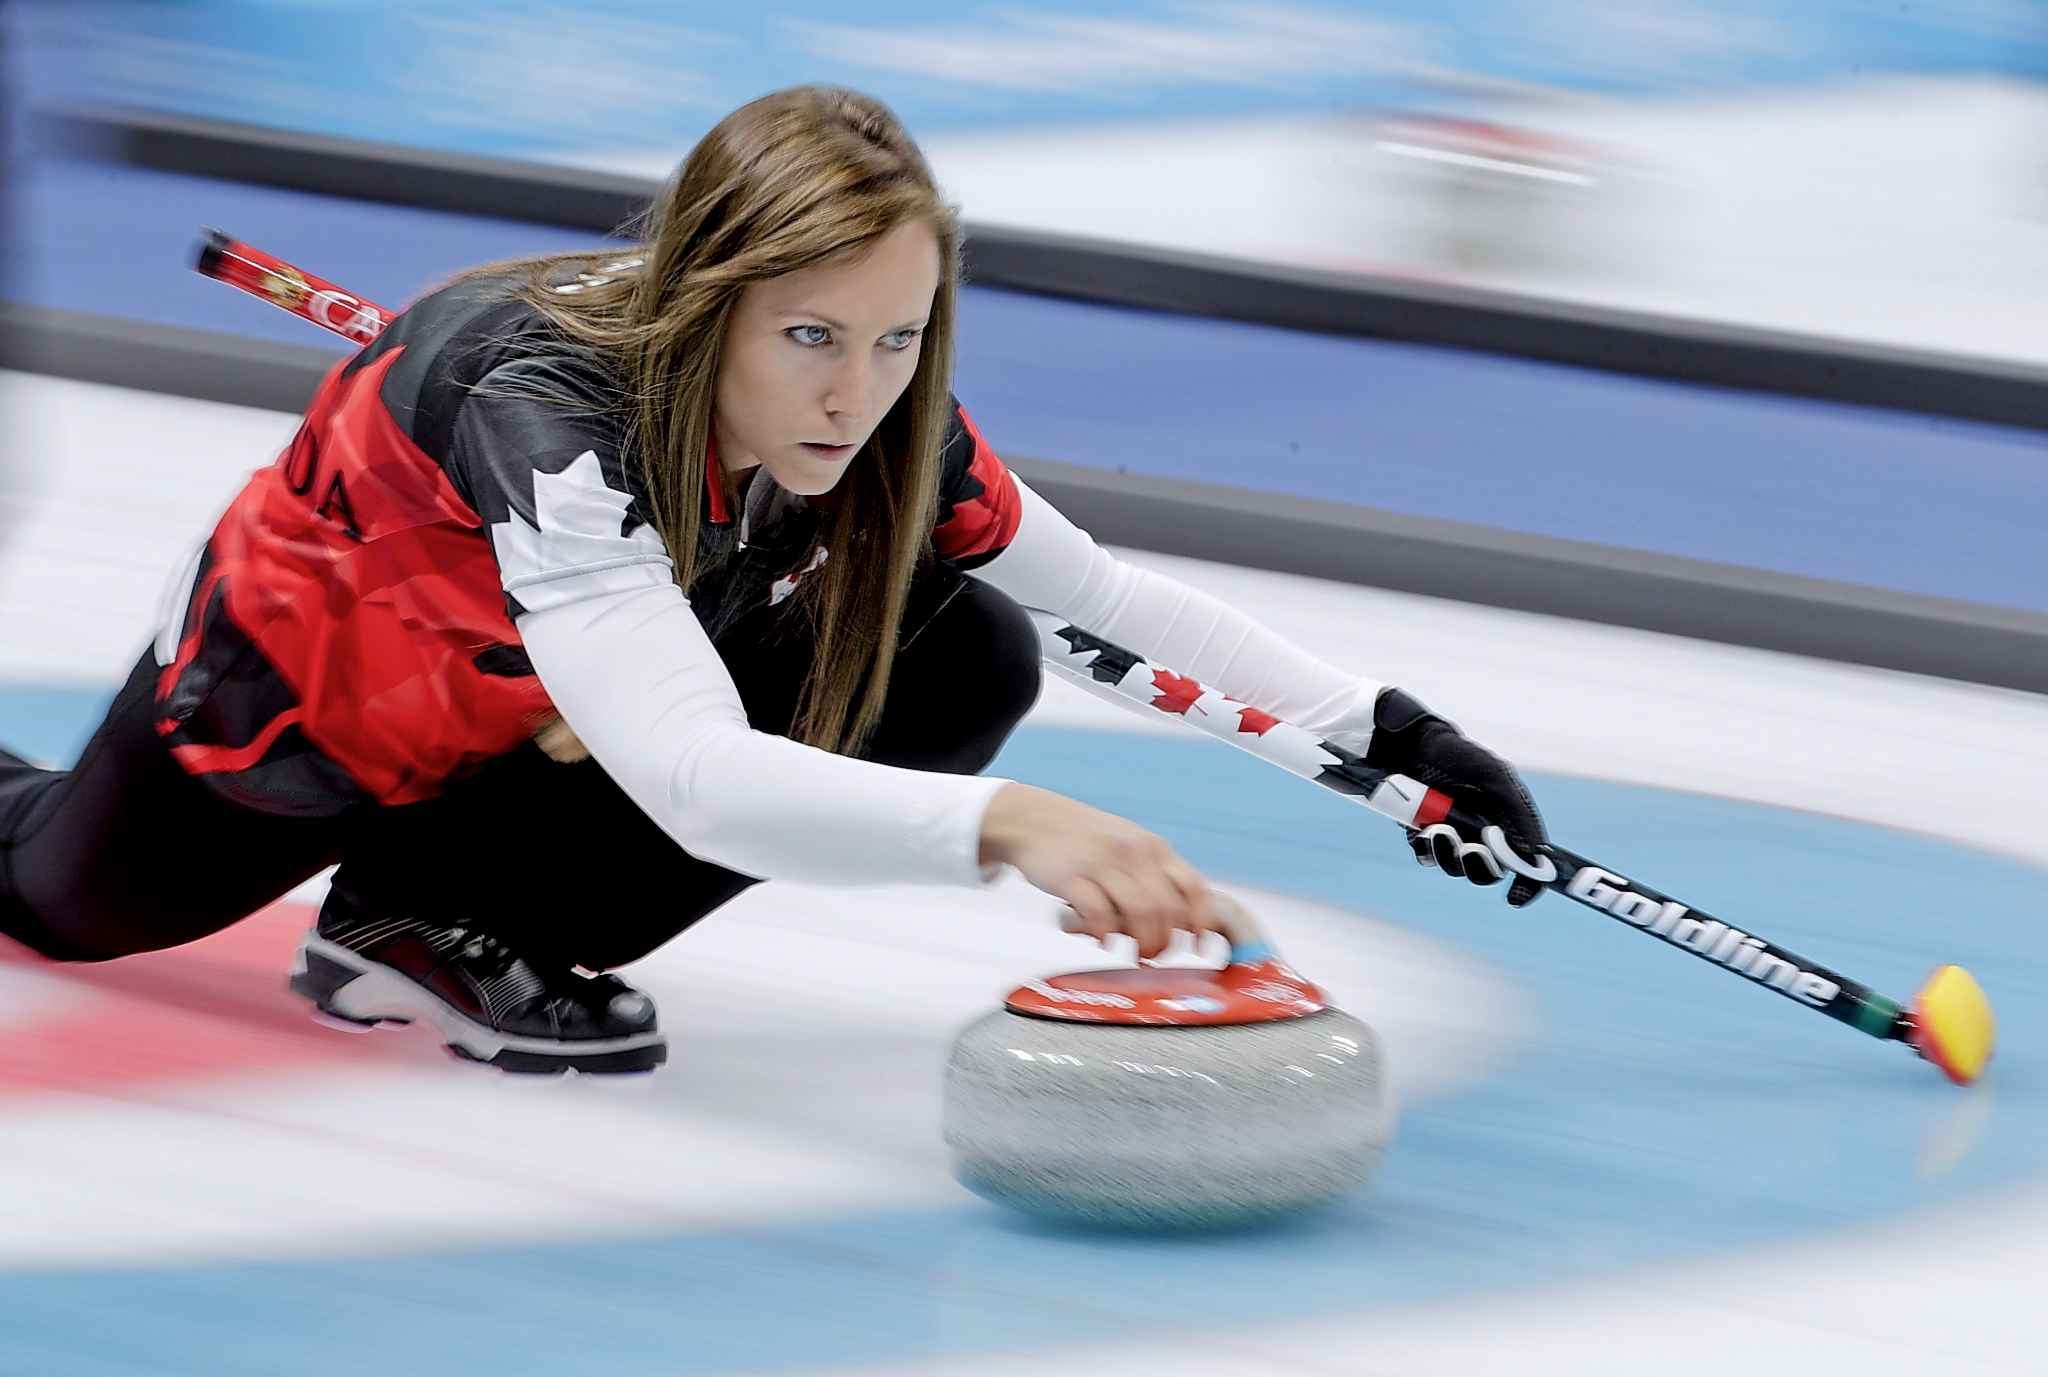 Ontario's Rachel Homan is going into the Scotties with a 51-13 record.